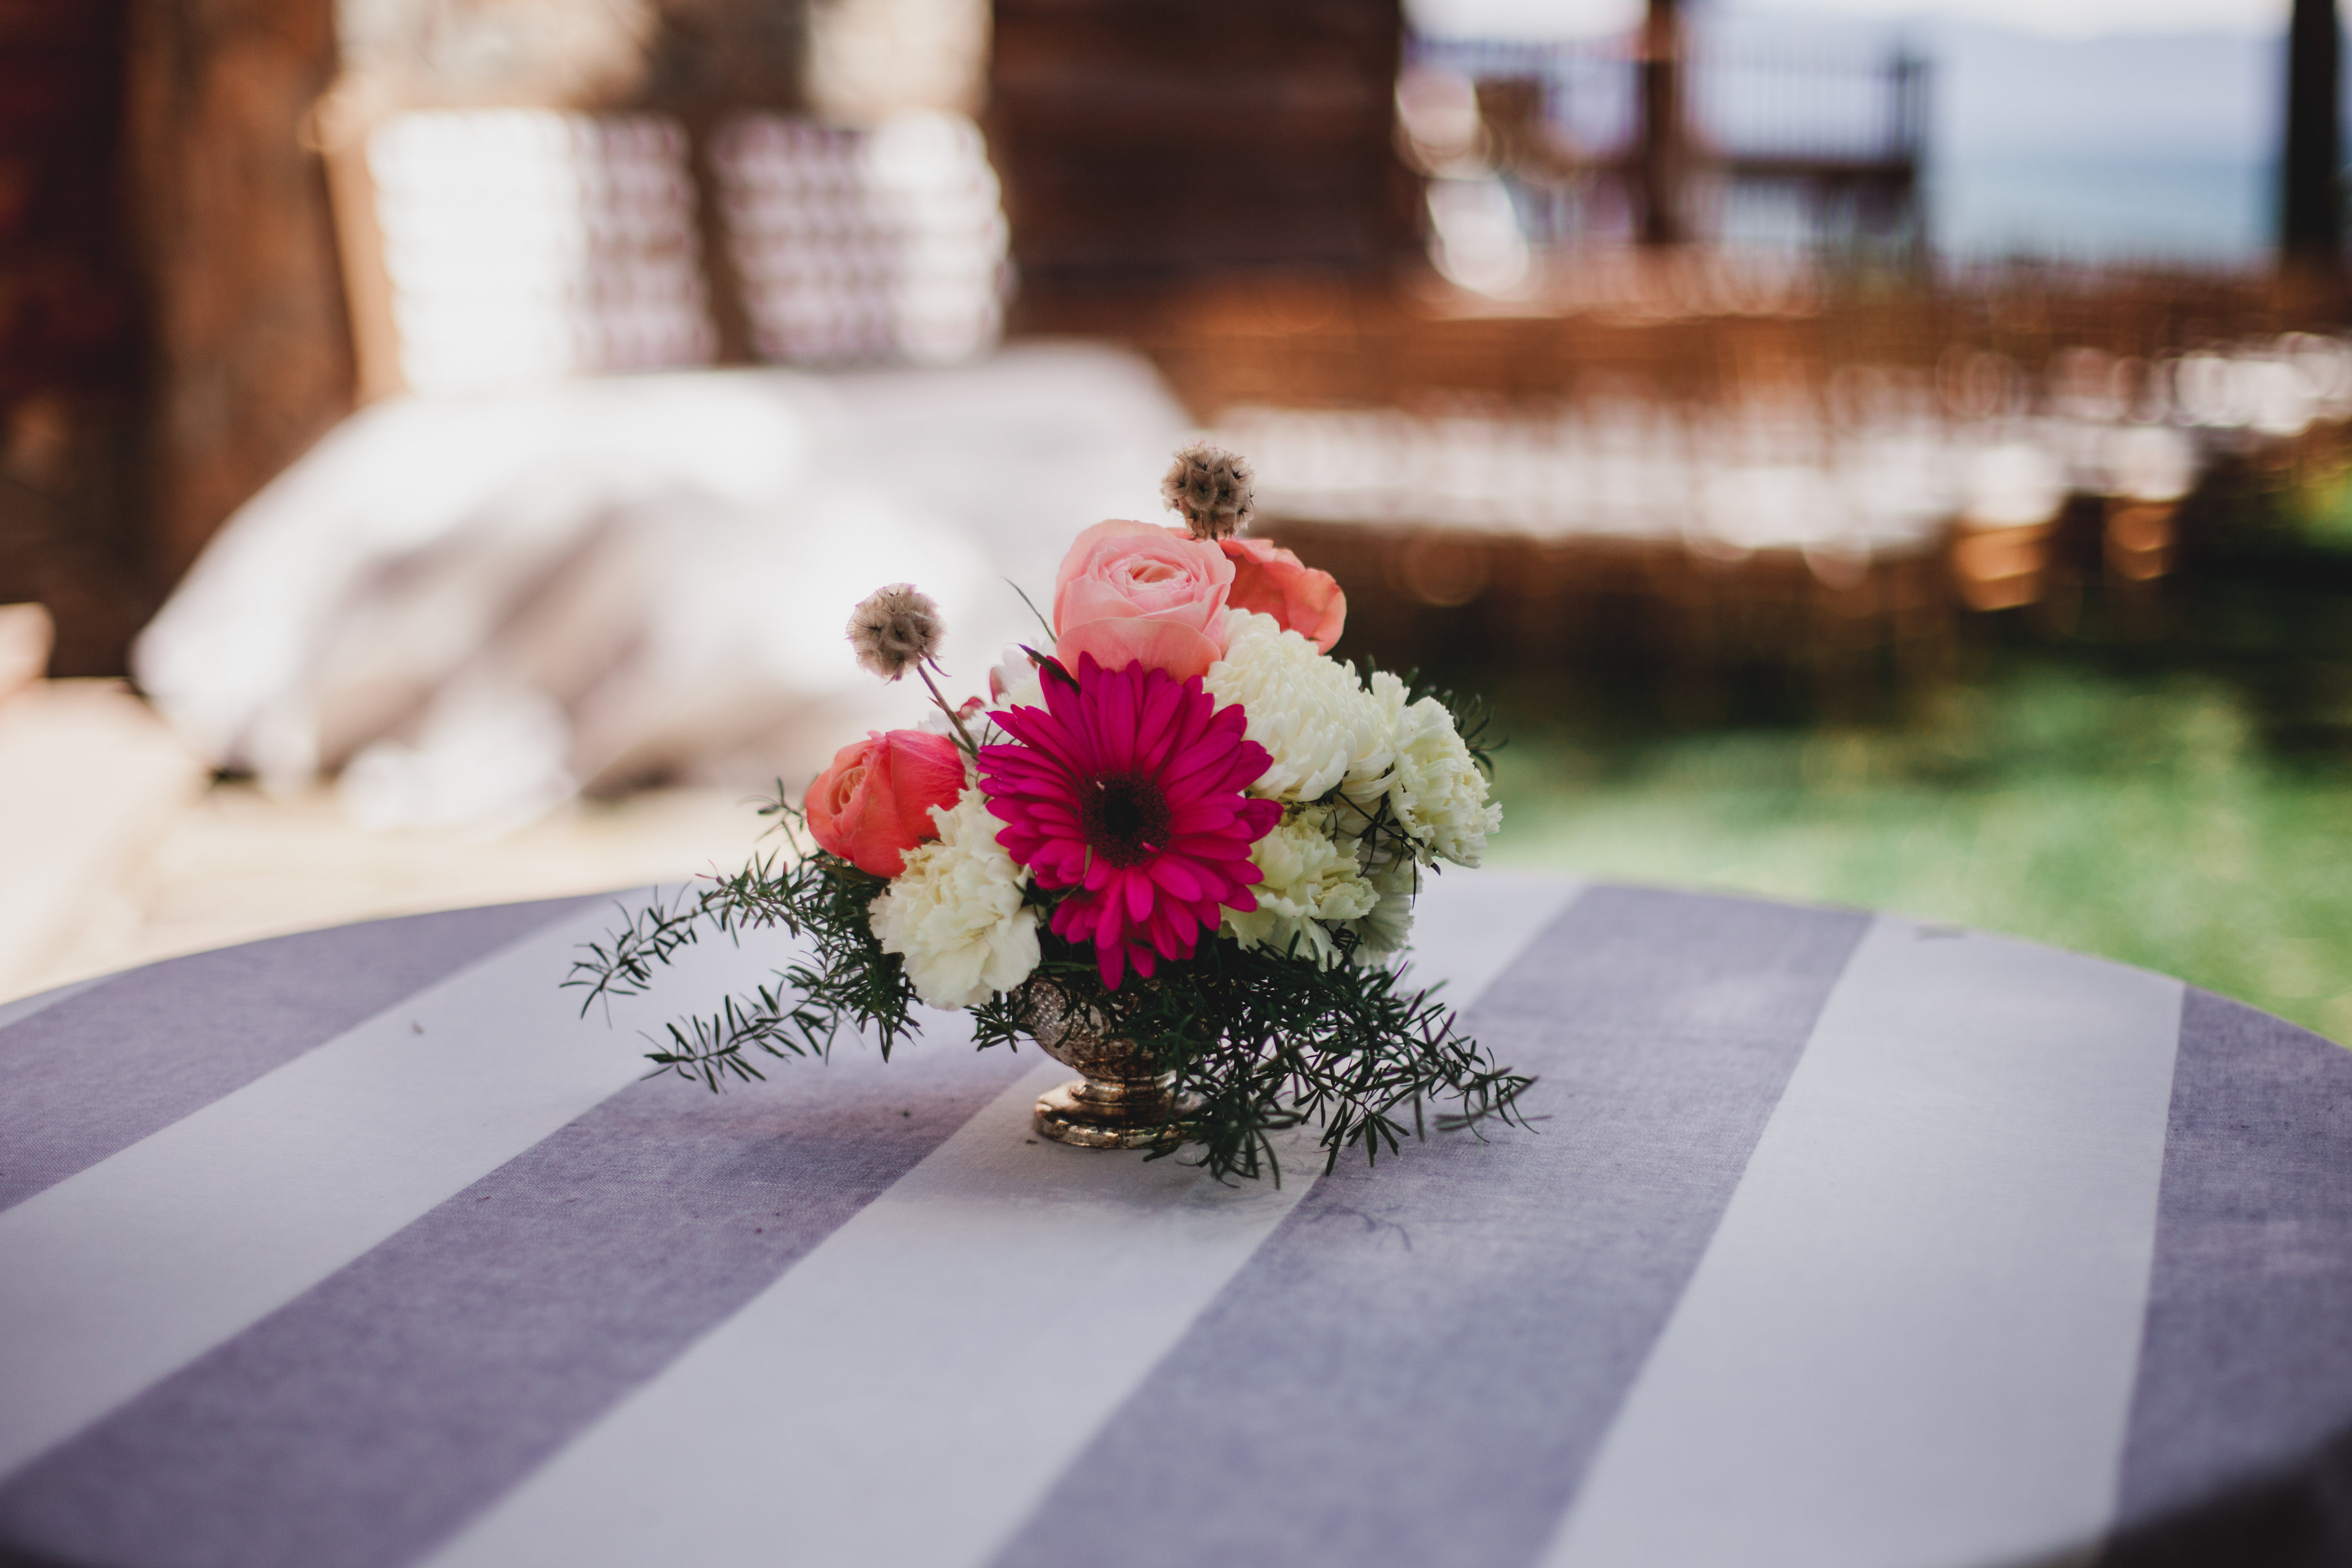 A_Floral_Affair_Gardnerville_Tahoe_Reno_Wedding_Florist_Reception_Cocktail